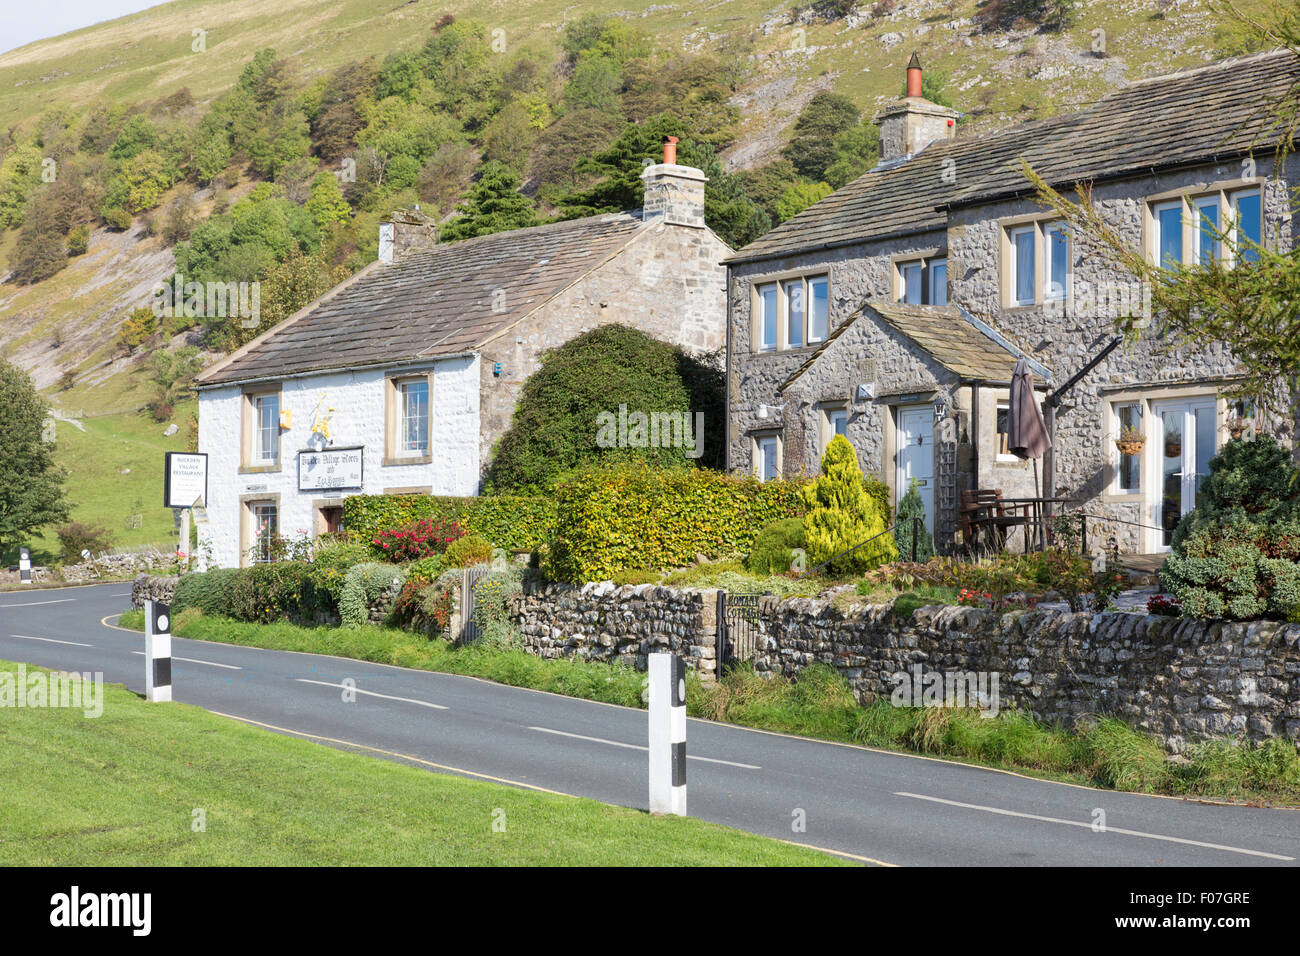 Cottages and the village store, Buckden, Wharfdale, Yorkshire Dales National Park, North Yorkshire, England, UK - Stock Image